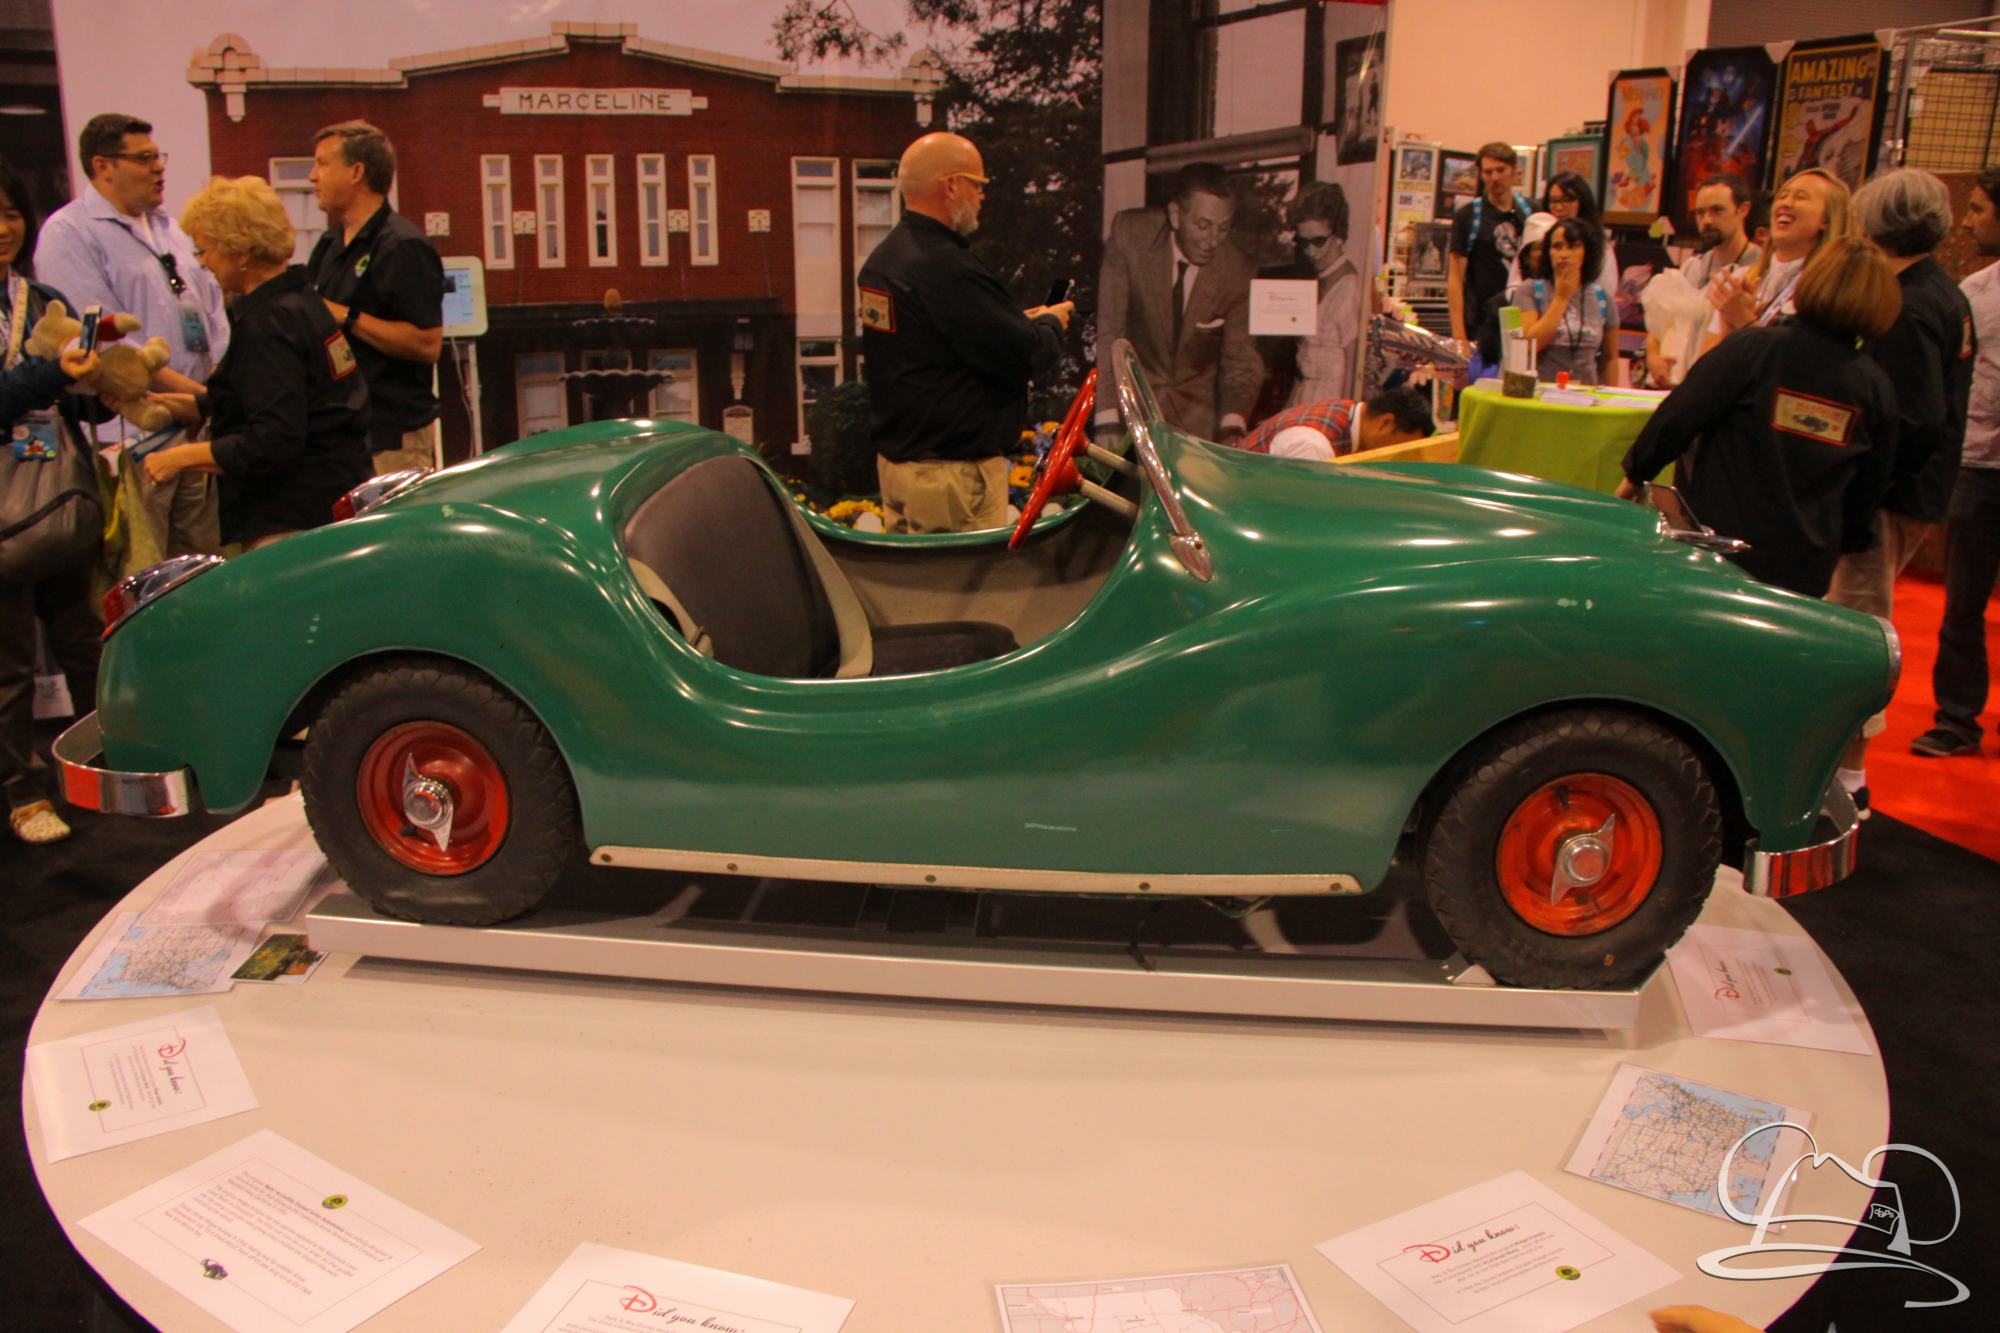 Autopia Car - D23 Expo - The Walt Disney Hometown Museum